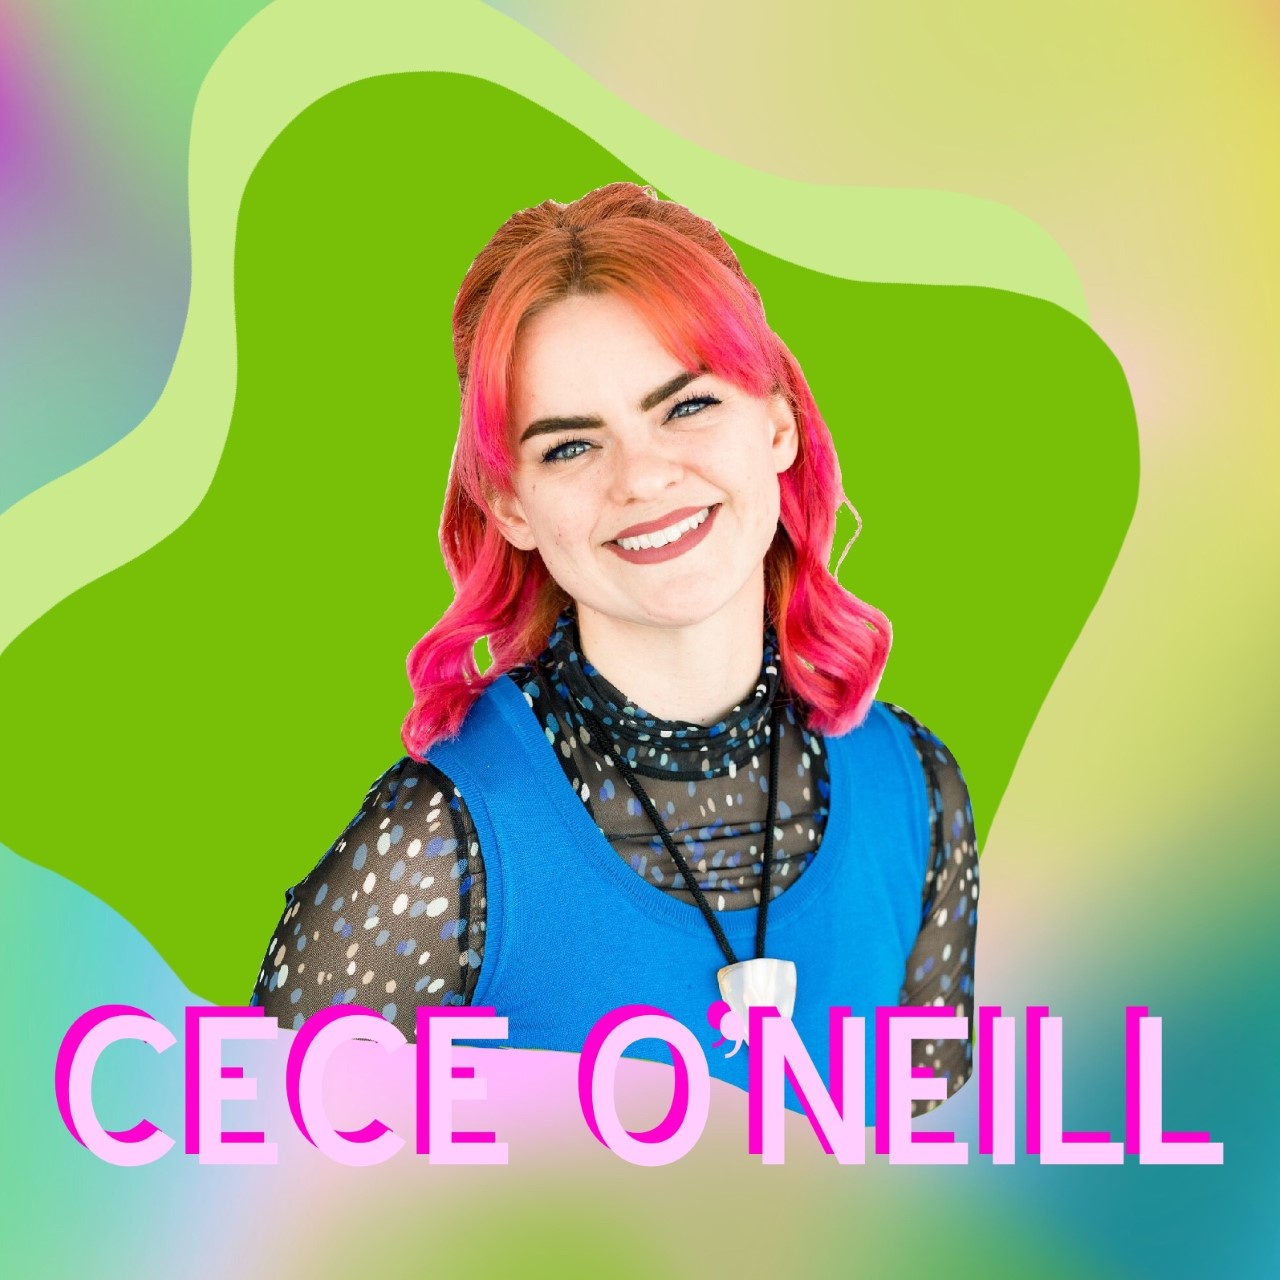 """""""CeCe O'Neill"""" superimposed over her headshot"""